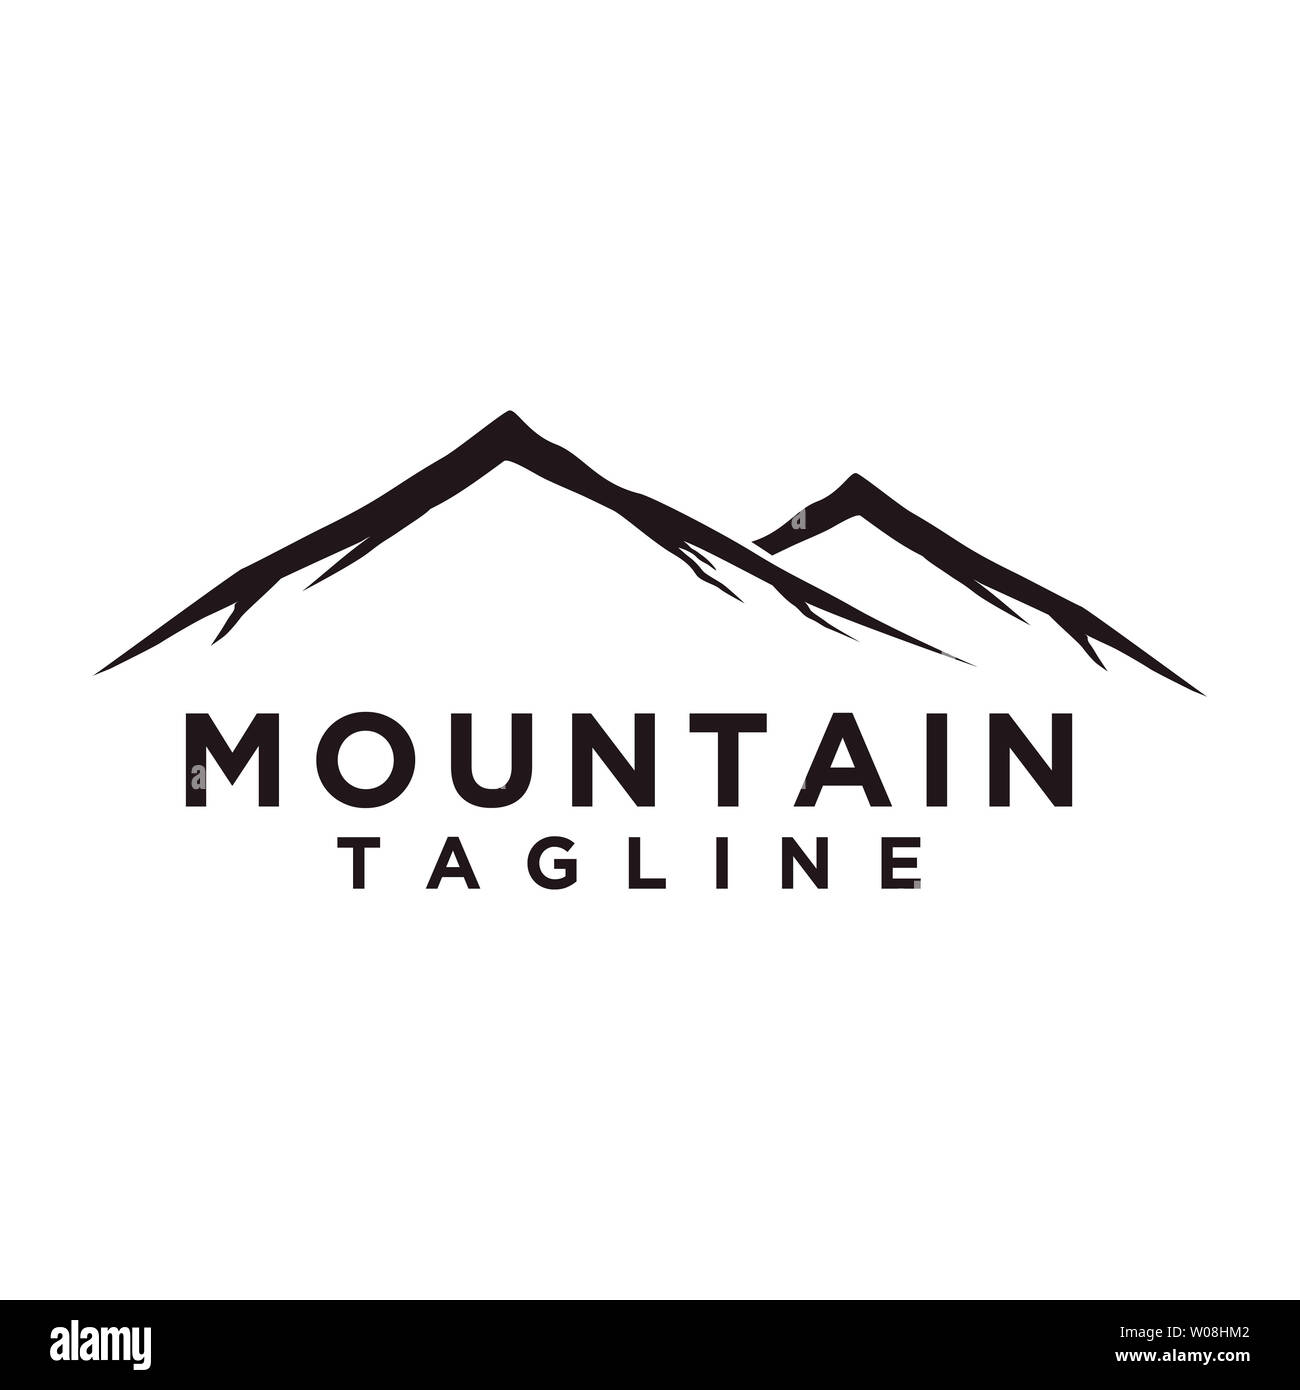 Mountain or hill or Peak logo design vector. Camp or adventure icon, Landscape symbol and can be used for travel and tourist brands. Minimalist style - Stock Image